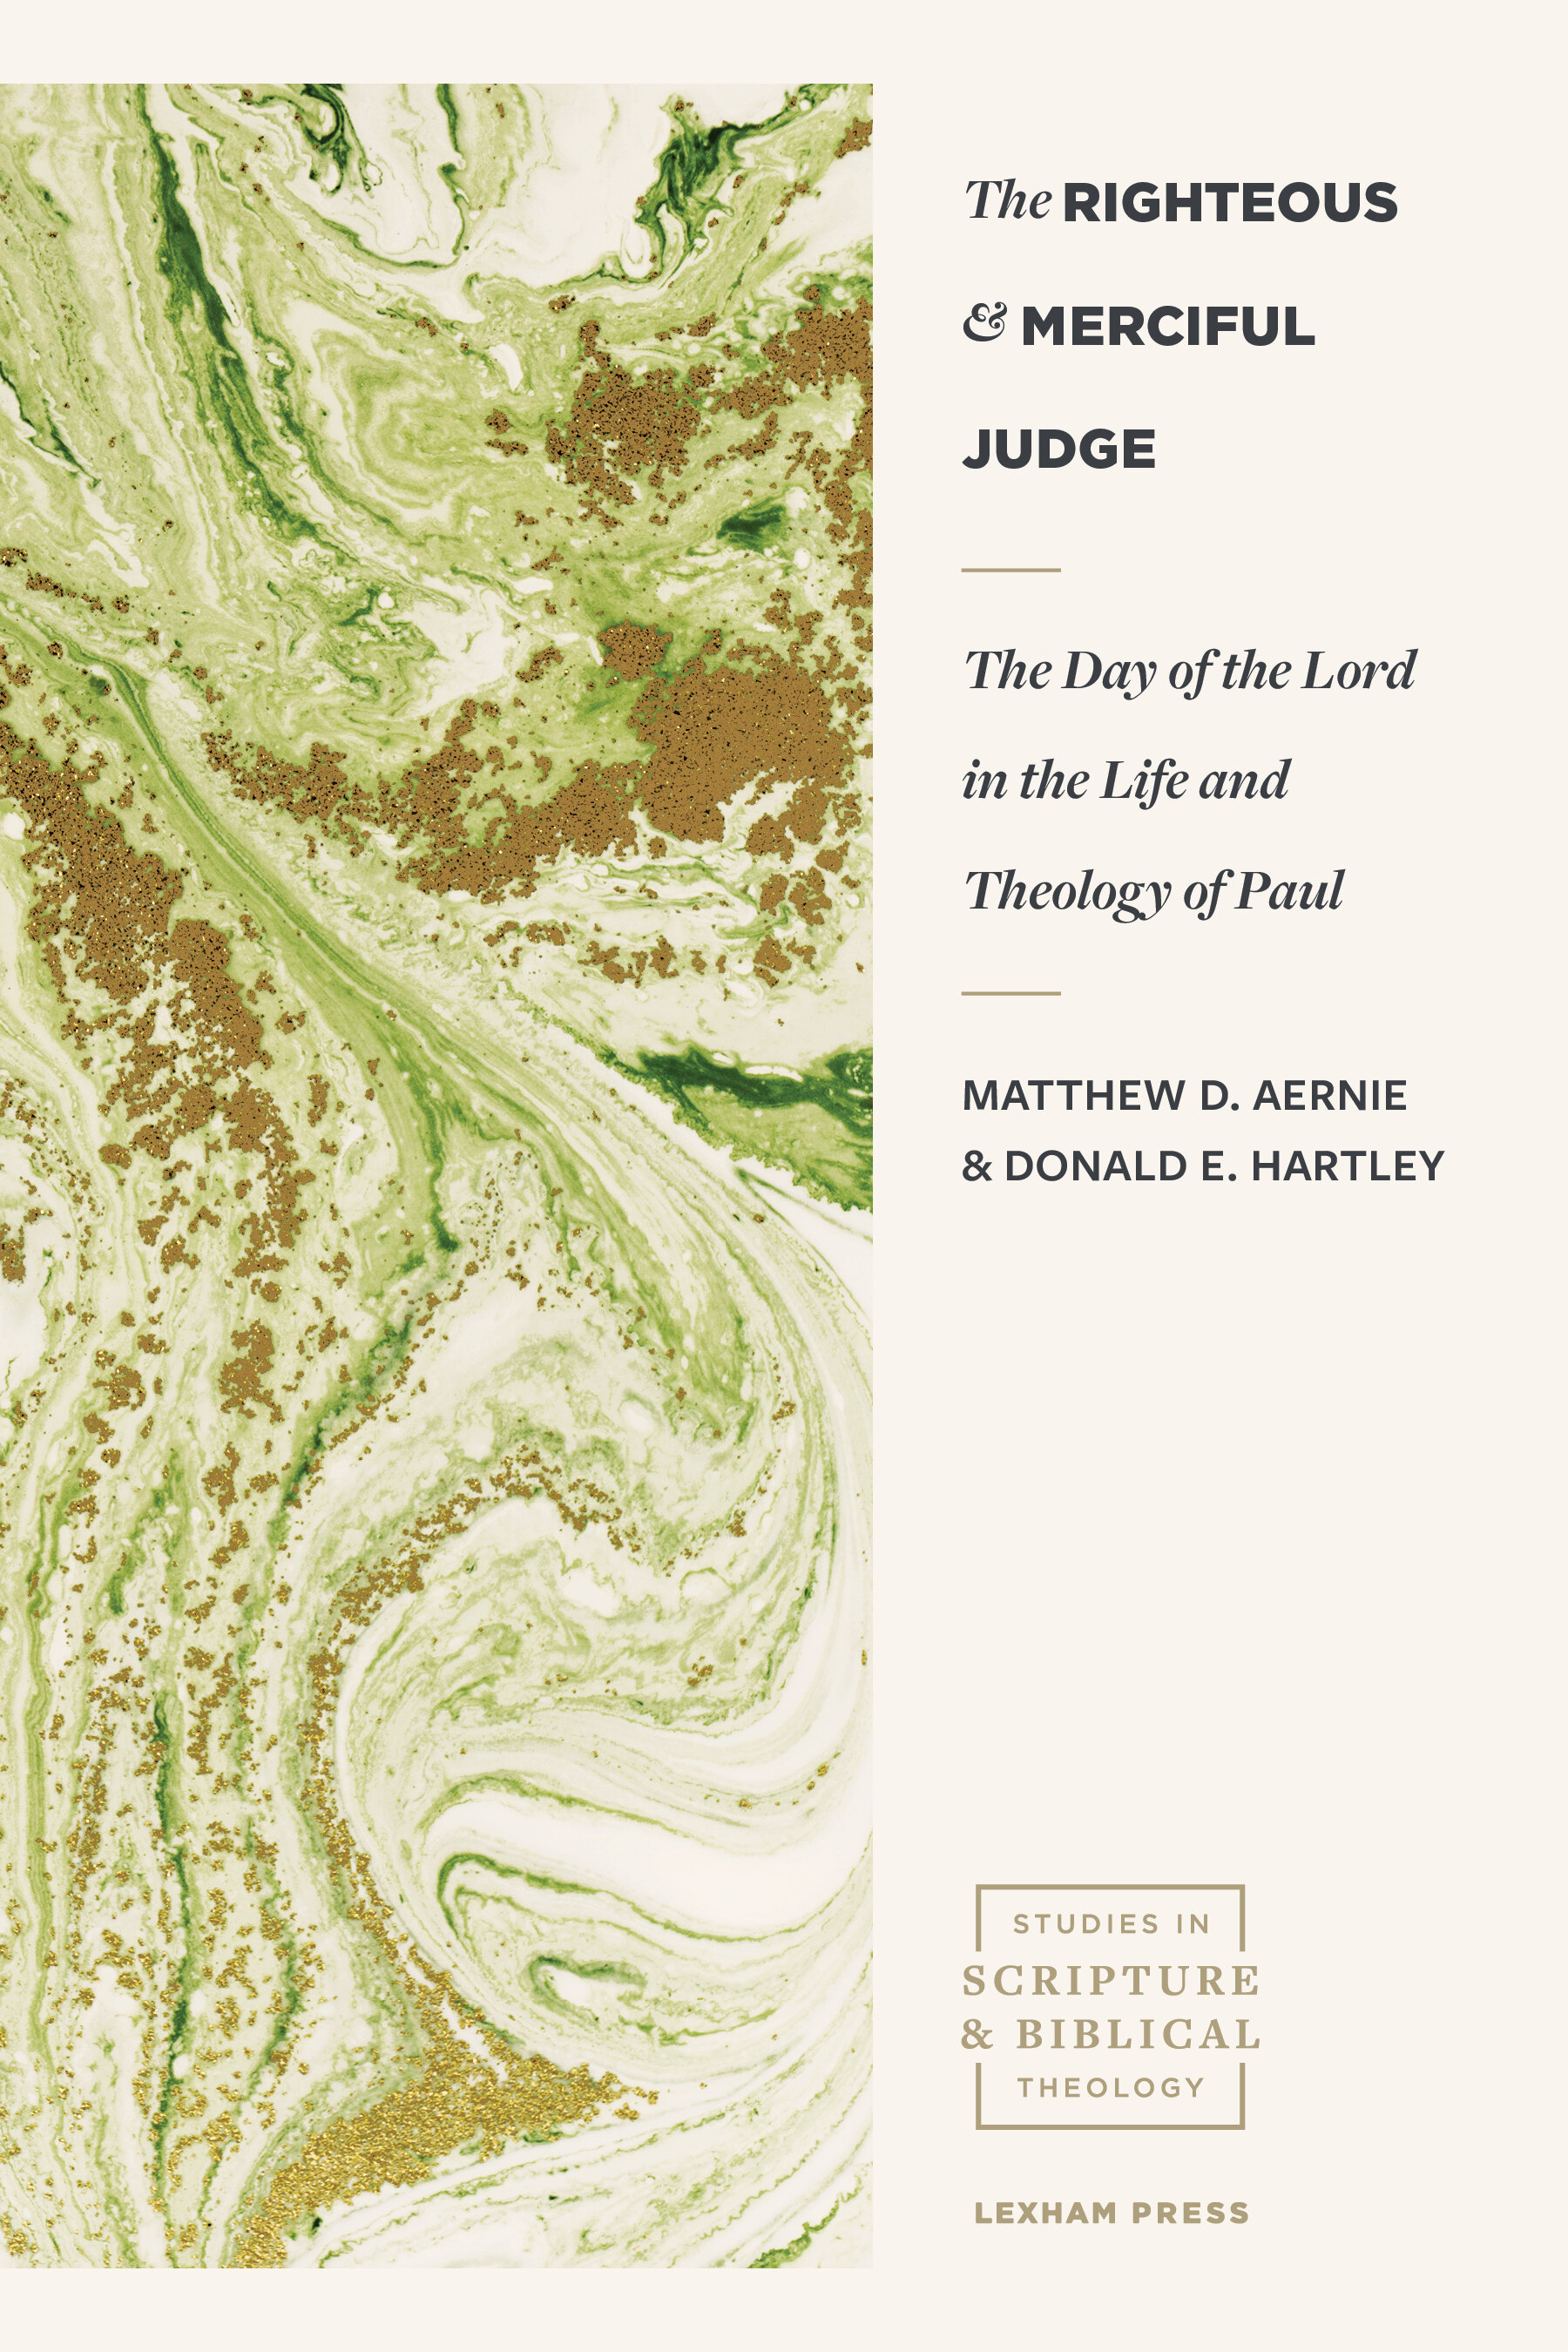 The Righteous and Merciful Judge